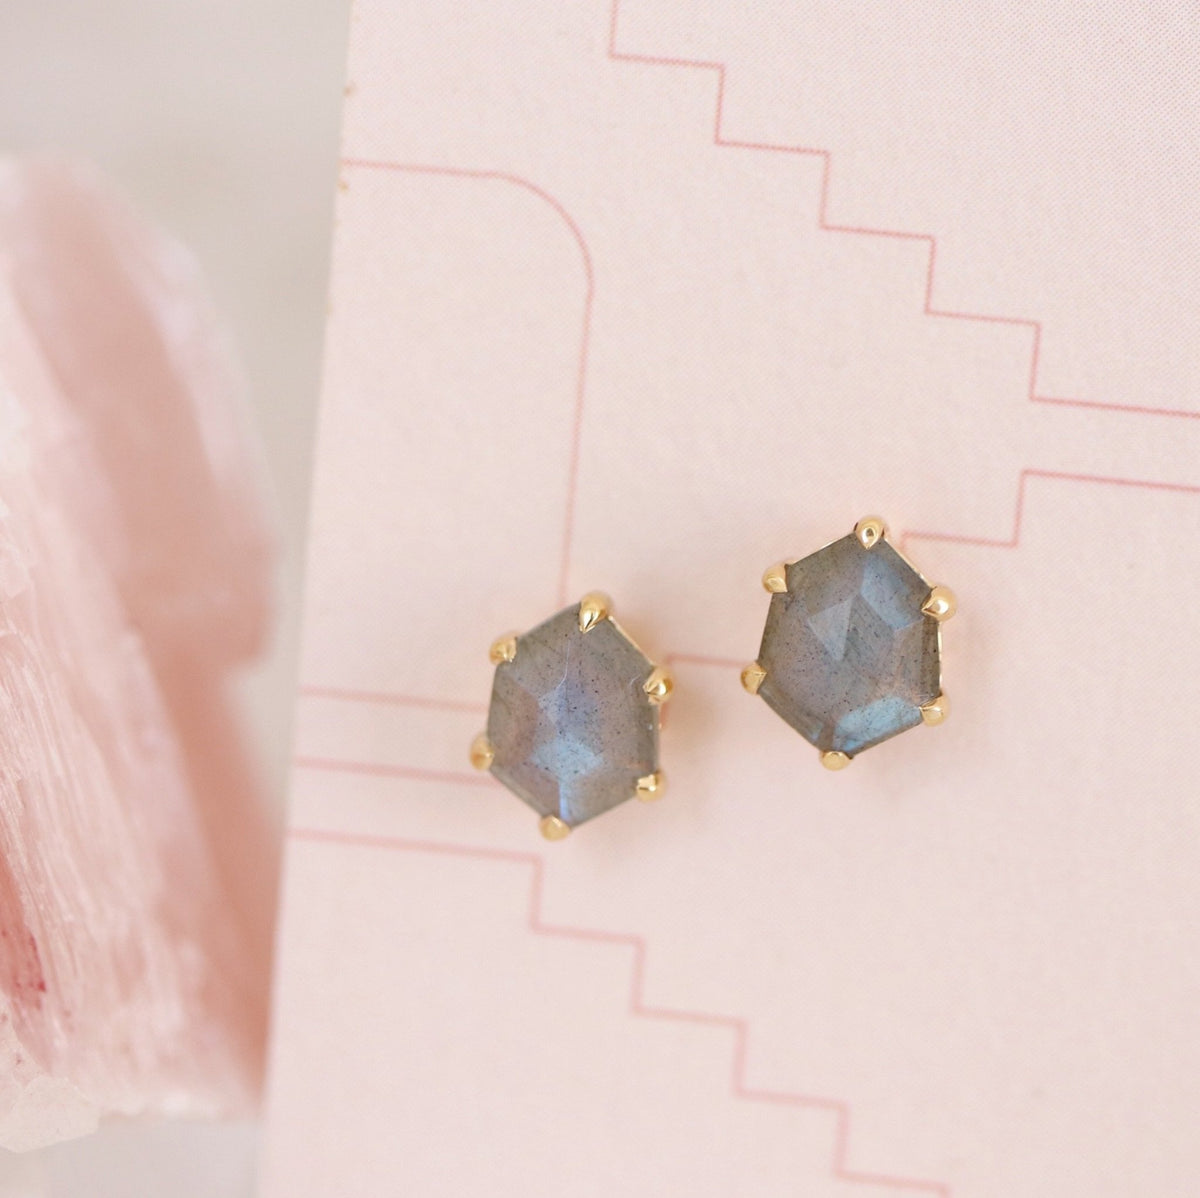 MINI HONOUR SHIELD STUD EARRINGS - LABRADORITE & GOLD - SO PRETTY CARA COTTER